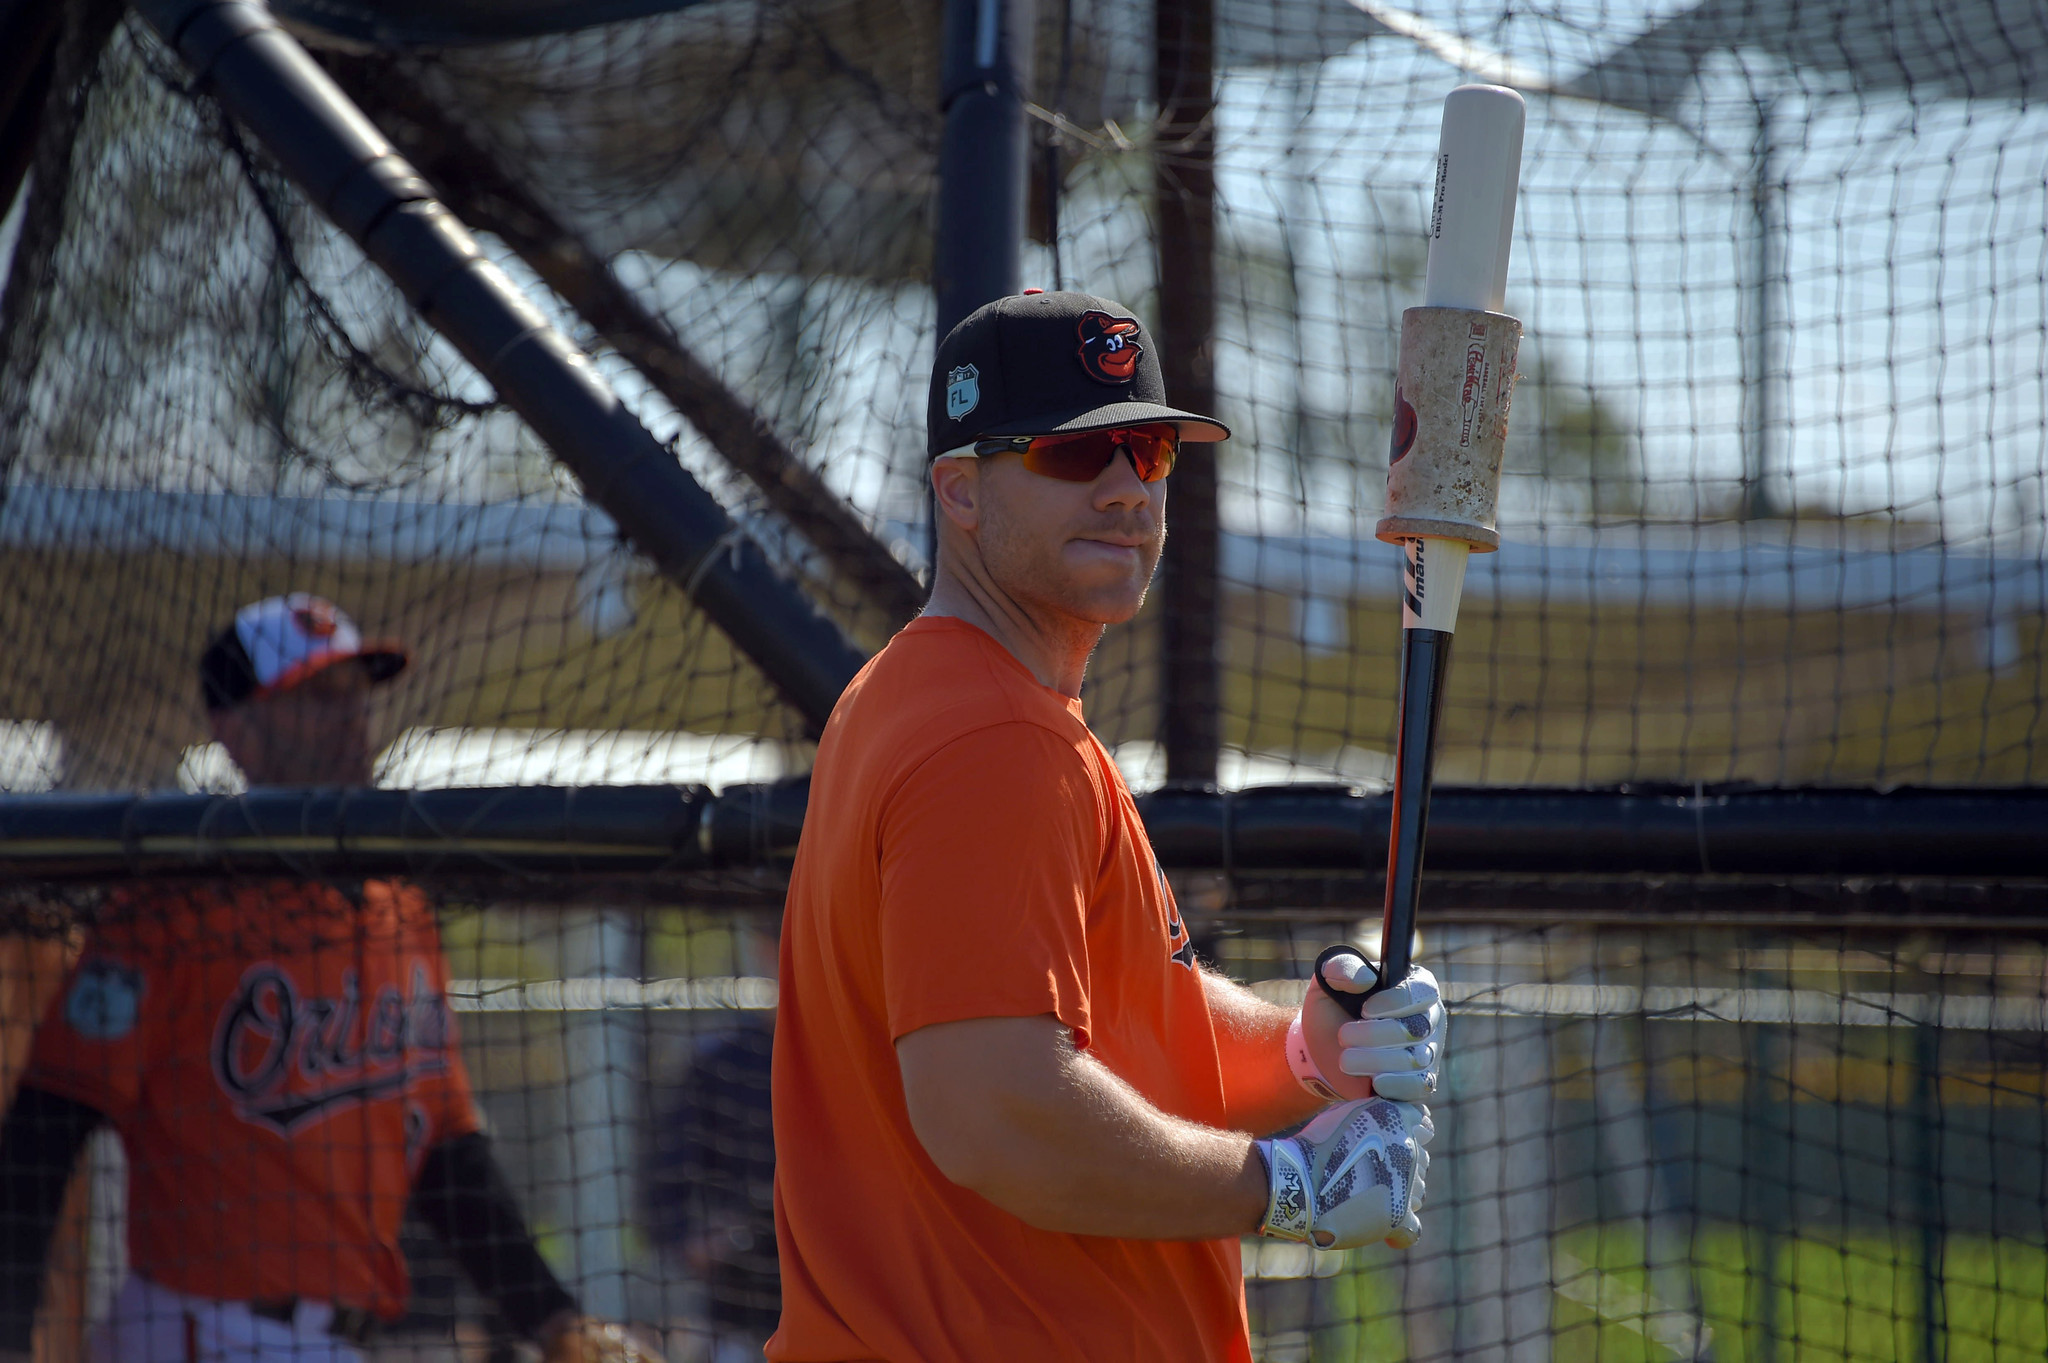 Bs-sp-orioles-spring-training-0221-20170219